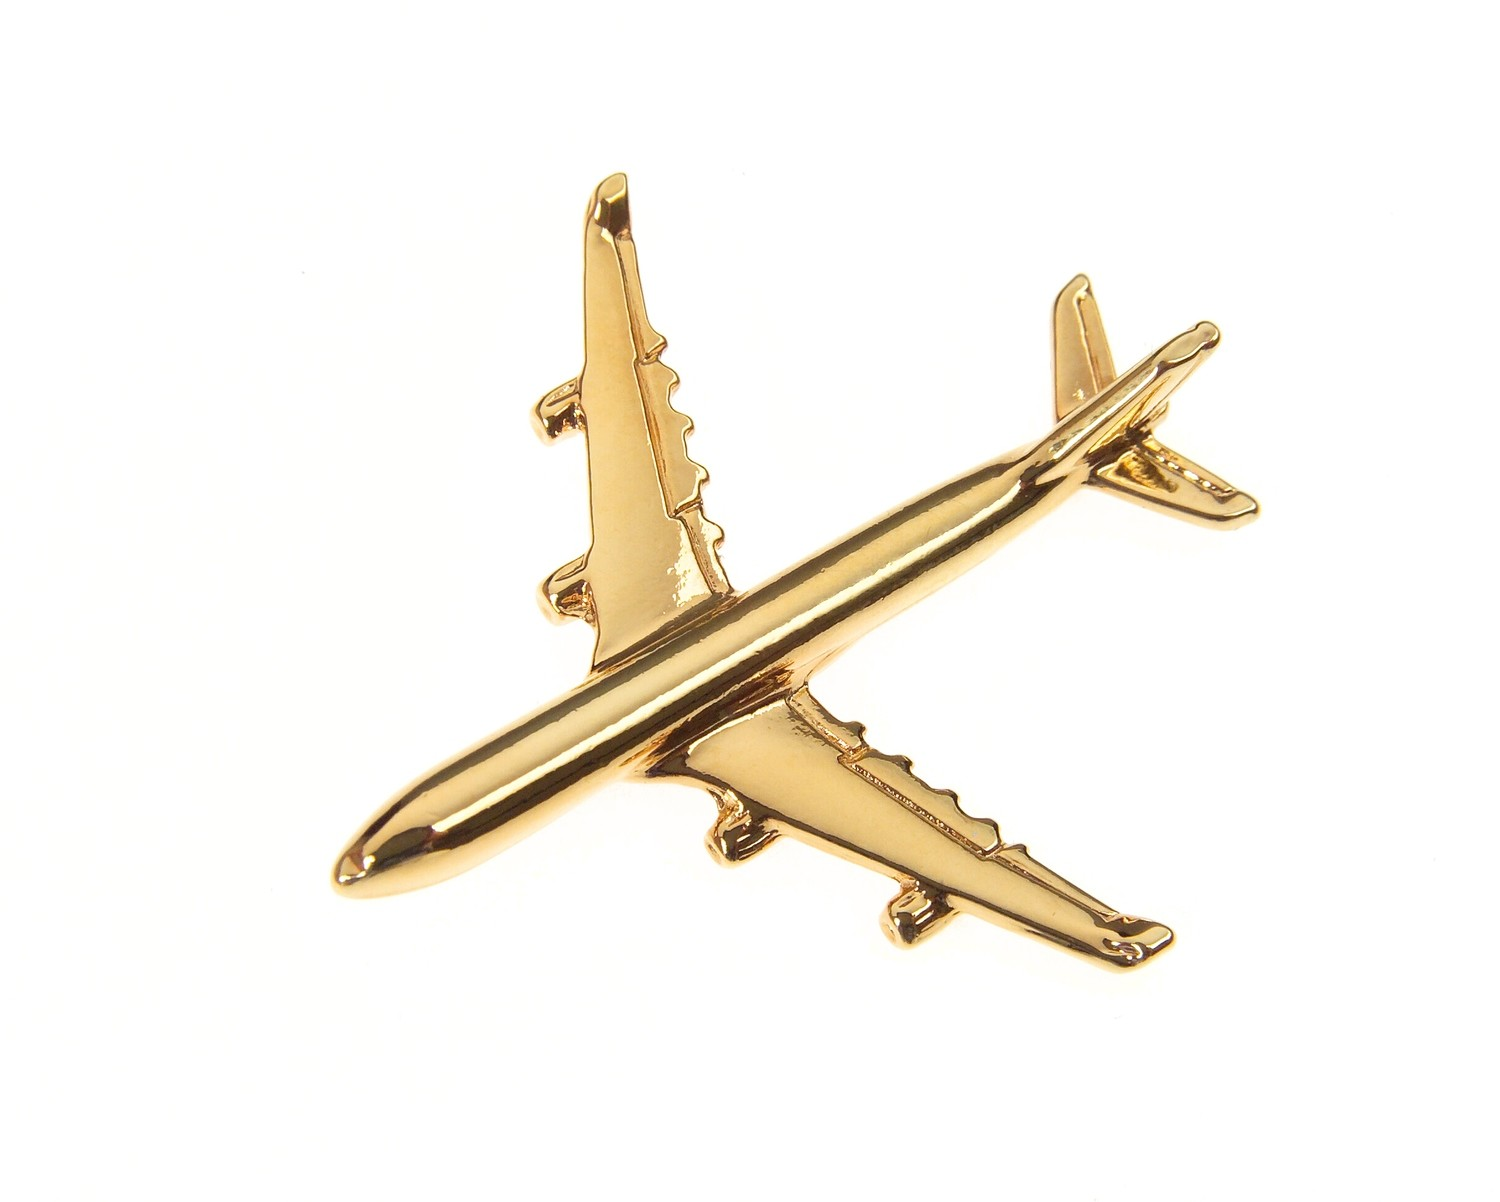 Airbus A340 Gold Plated Tie / Lapel Pin